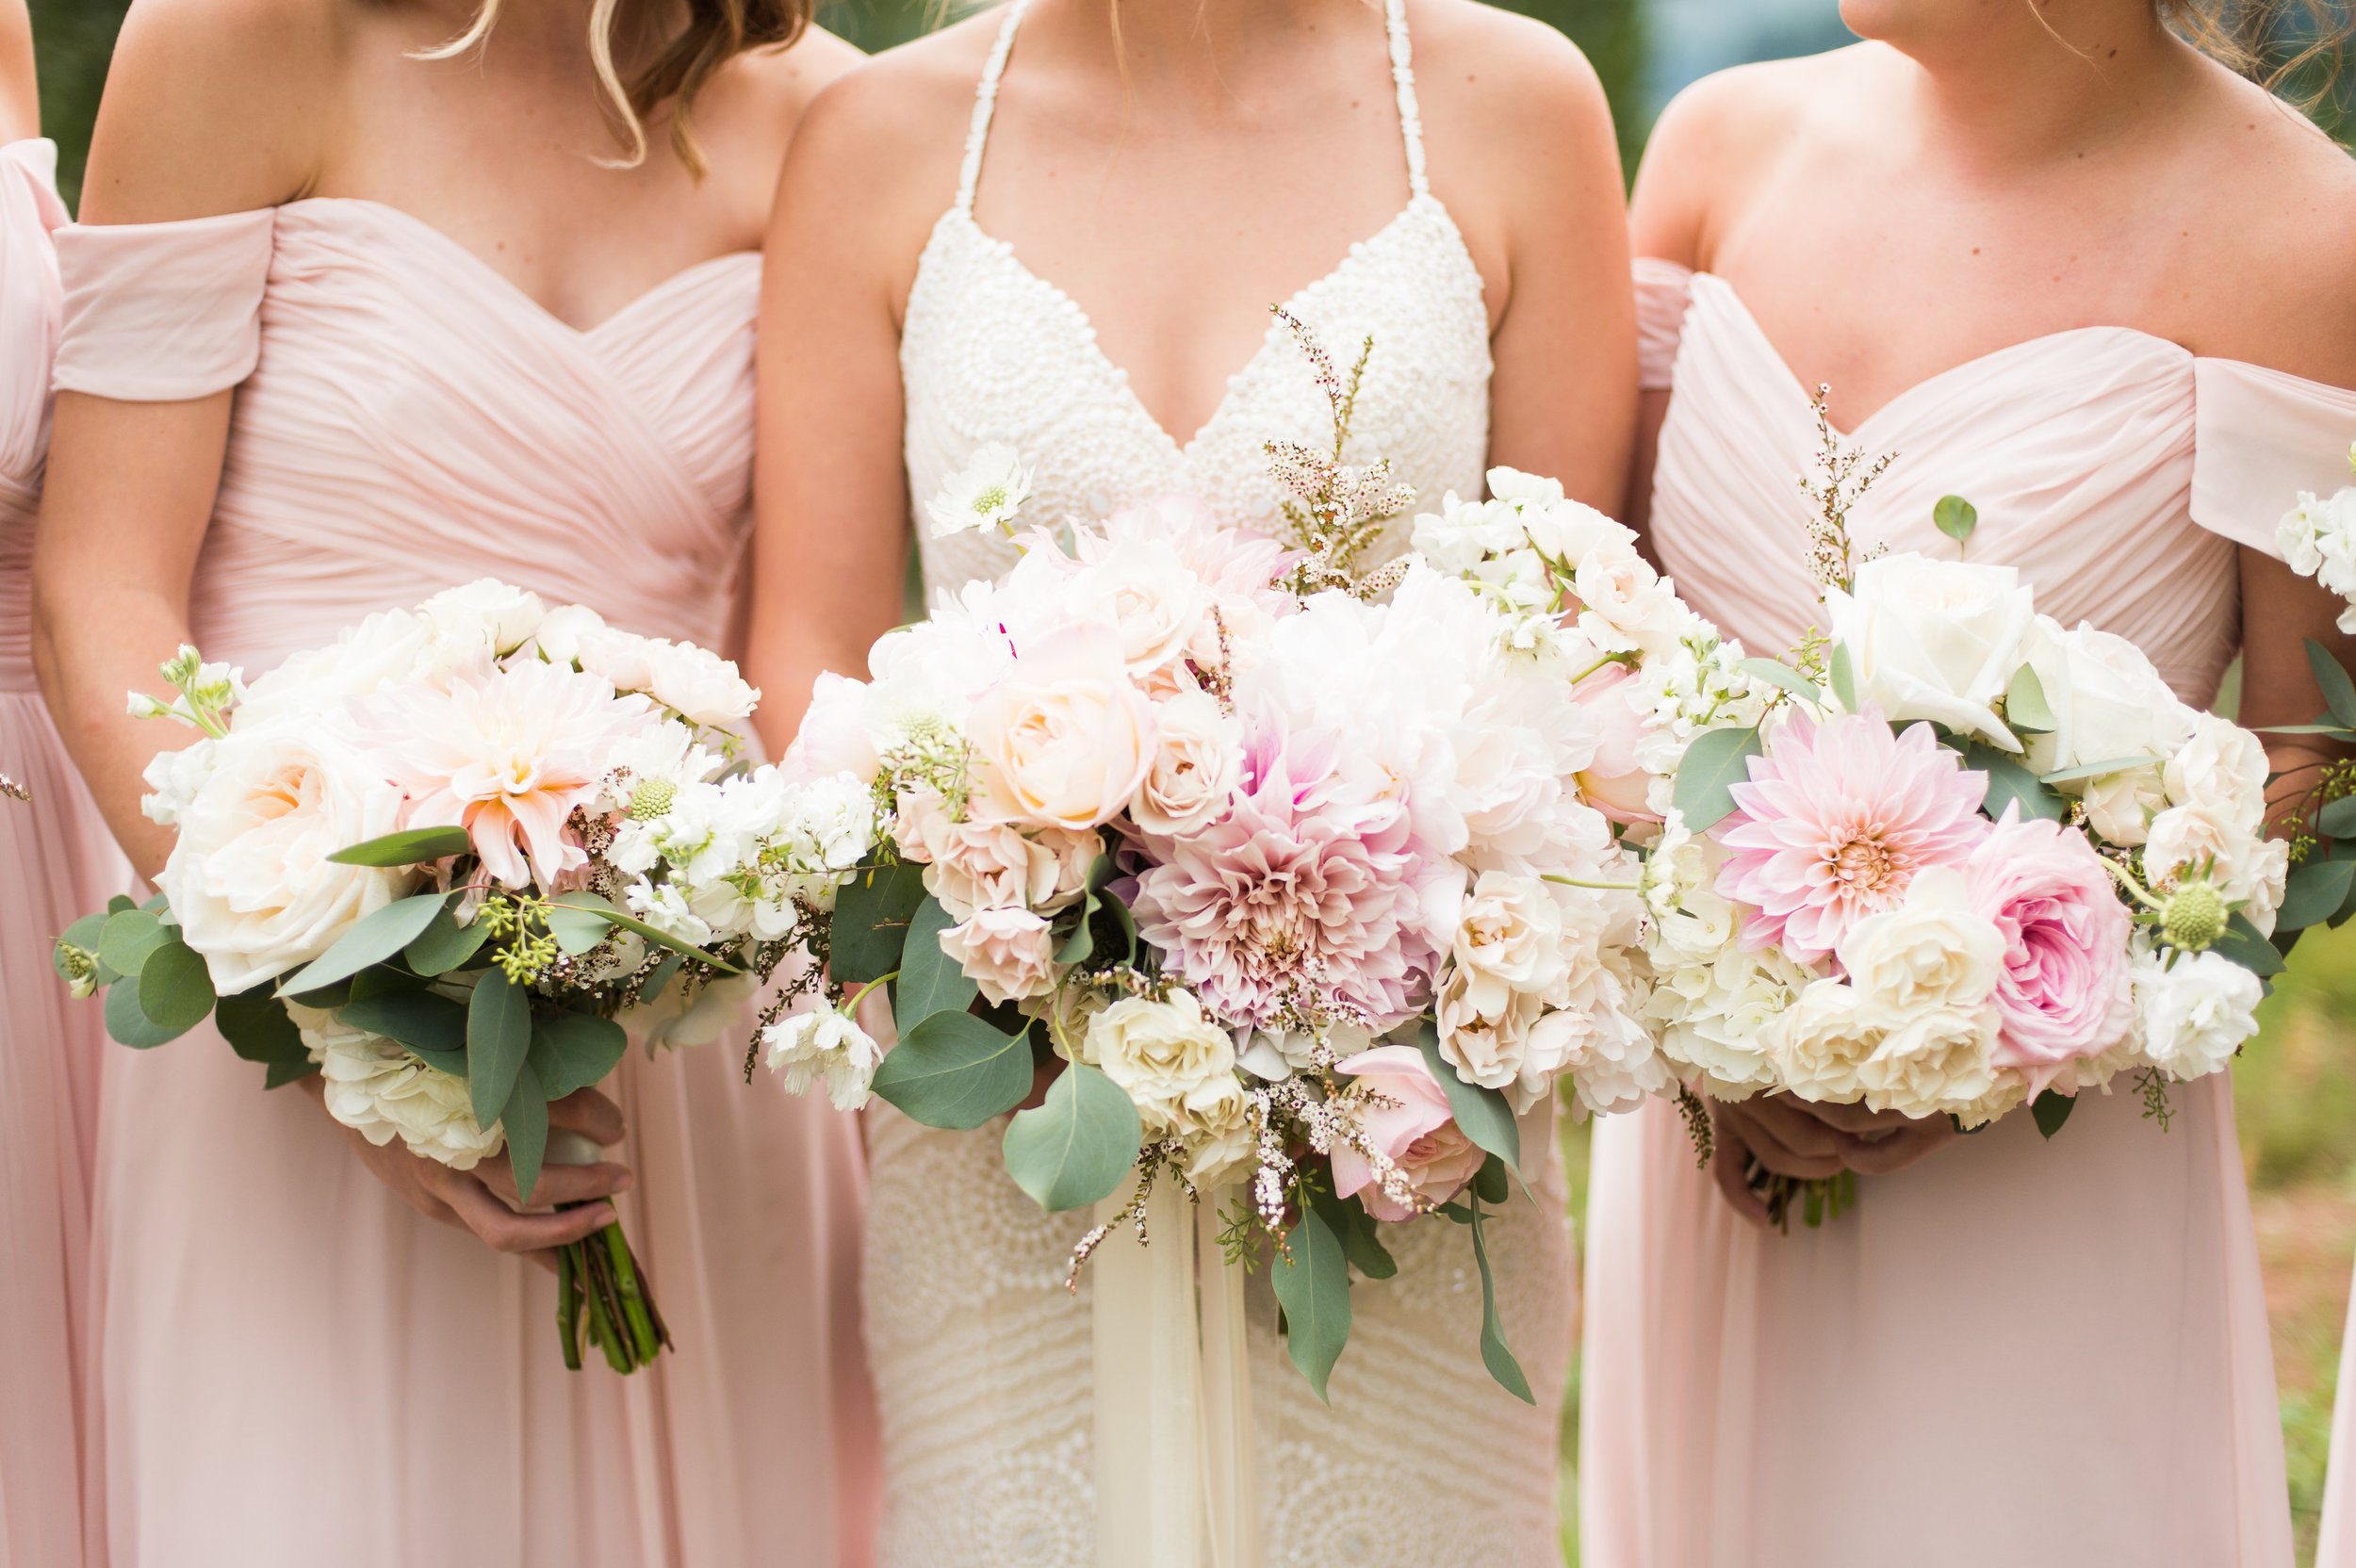 Flowers by Lace and Lilies, greenery bouquets, bridesmaid flowers, bridal bouquet, colorado wedding, mountain wedding, blush bridesmaid dress